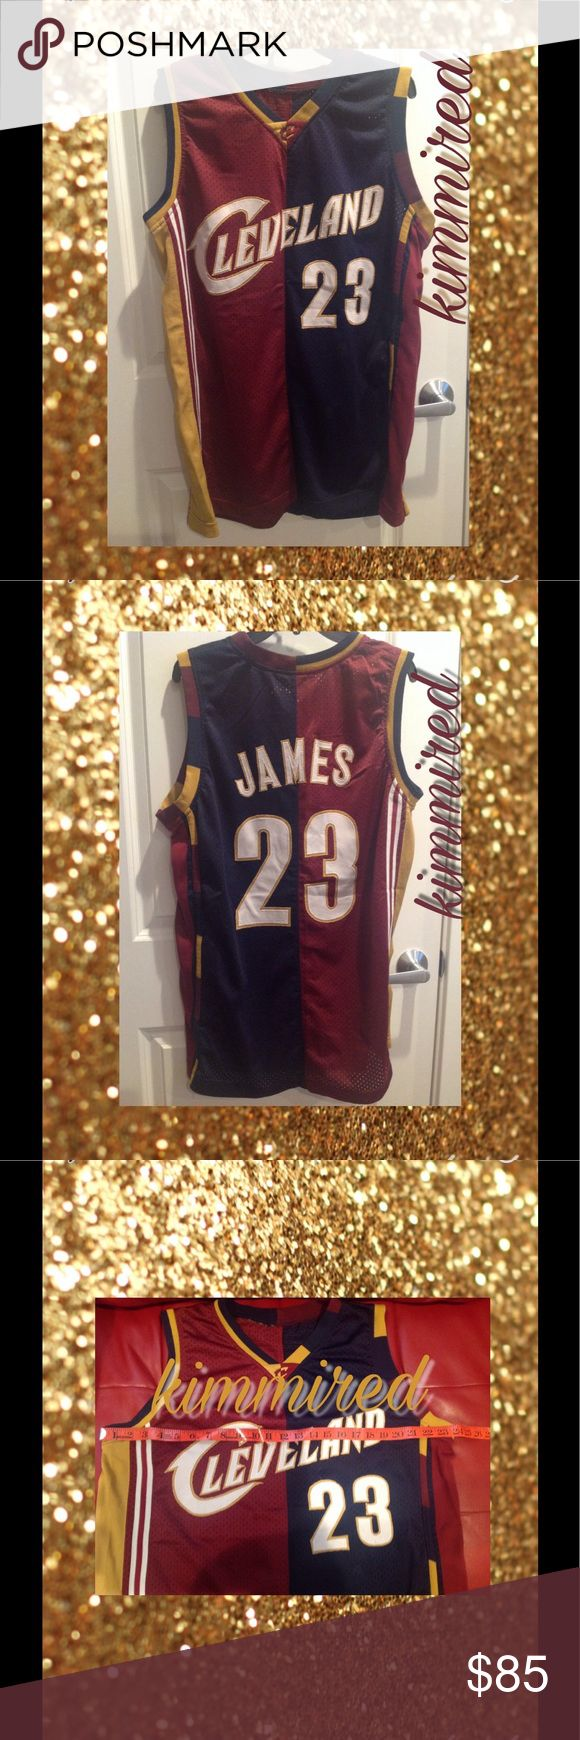 """Lebron James Cleveland Cavs Home/Away Jersey~ L\48 Mens Lebron James #23 Cleveland Cavaliers Home/Away Jersey ~ L (48)    2️⃣3️⃣  RARE‼️‼️‼️    My son ripped the tags off but per the measurement (see pic), it measures a 48"""" chest which is a Large per the size chart (see pic).   2️⃣3️⃣  excellent used condition     colorblocked / 1/2 home, 1/2 away  2️⃣3️⃣  stitched lettering  Item is cross-posted so act fast before IT IS GONE!    No smoking  No pets Shirts"""